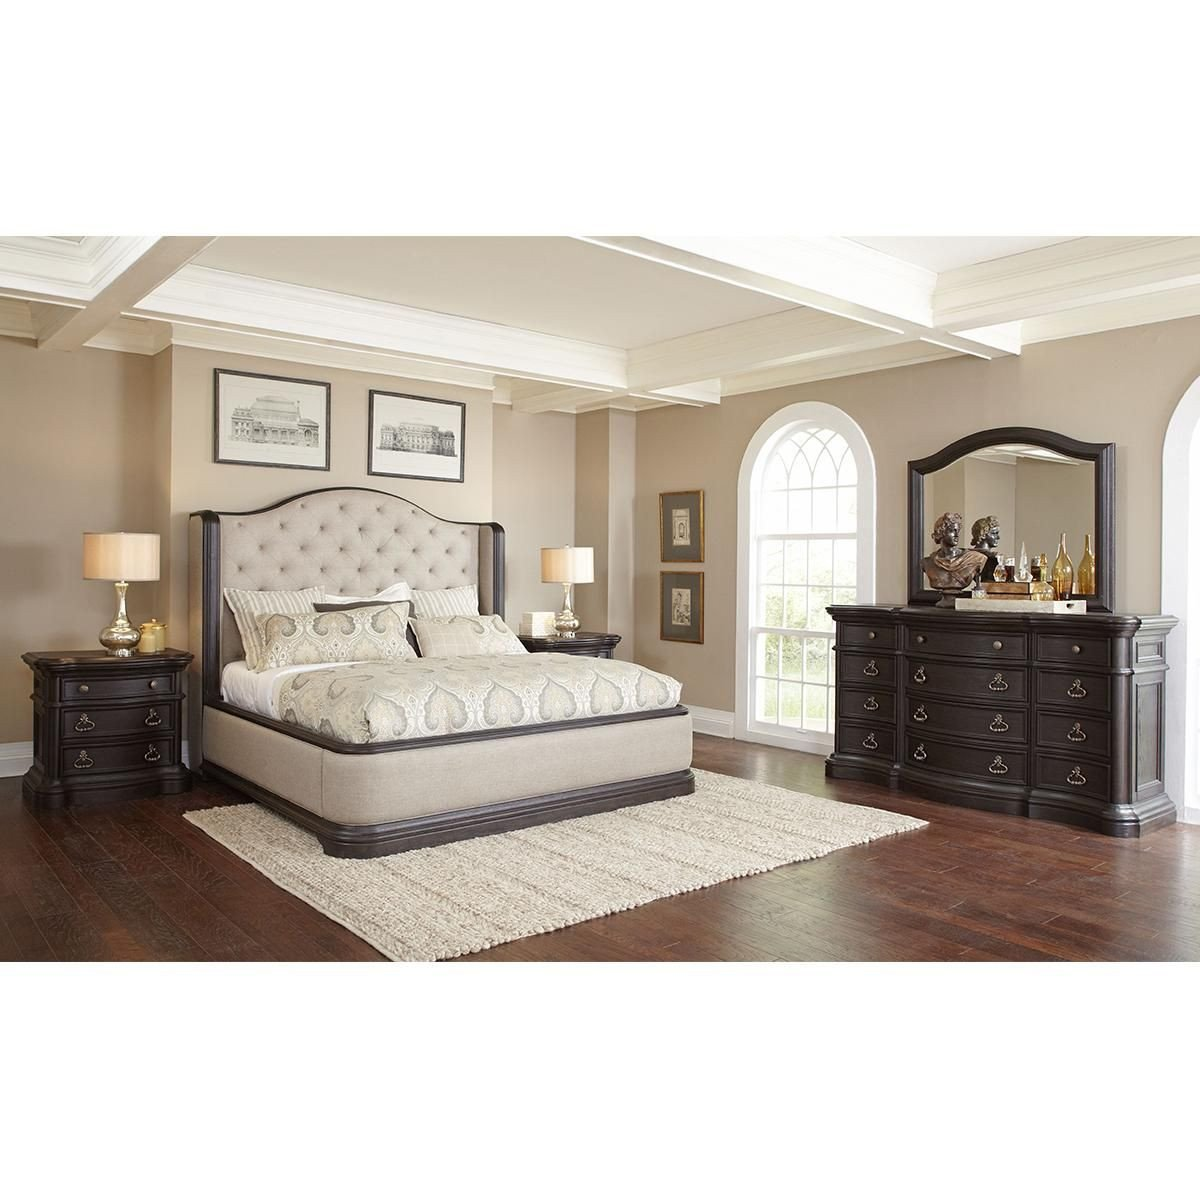 King Bedroom Furniture Set Beautiful Nineteen37 Ravena 4 Piece King Bedroom Set In Root Beer